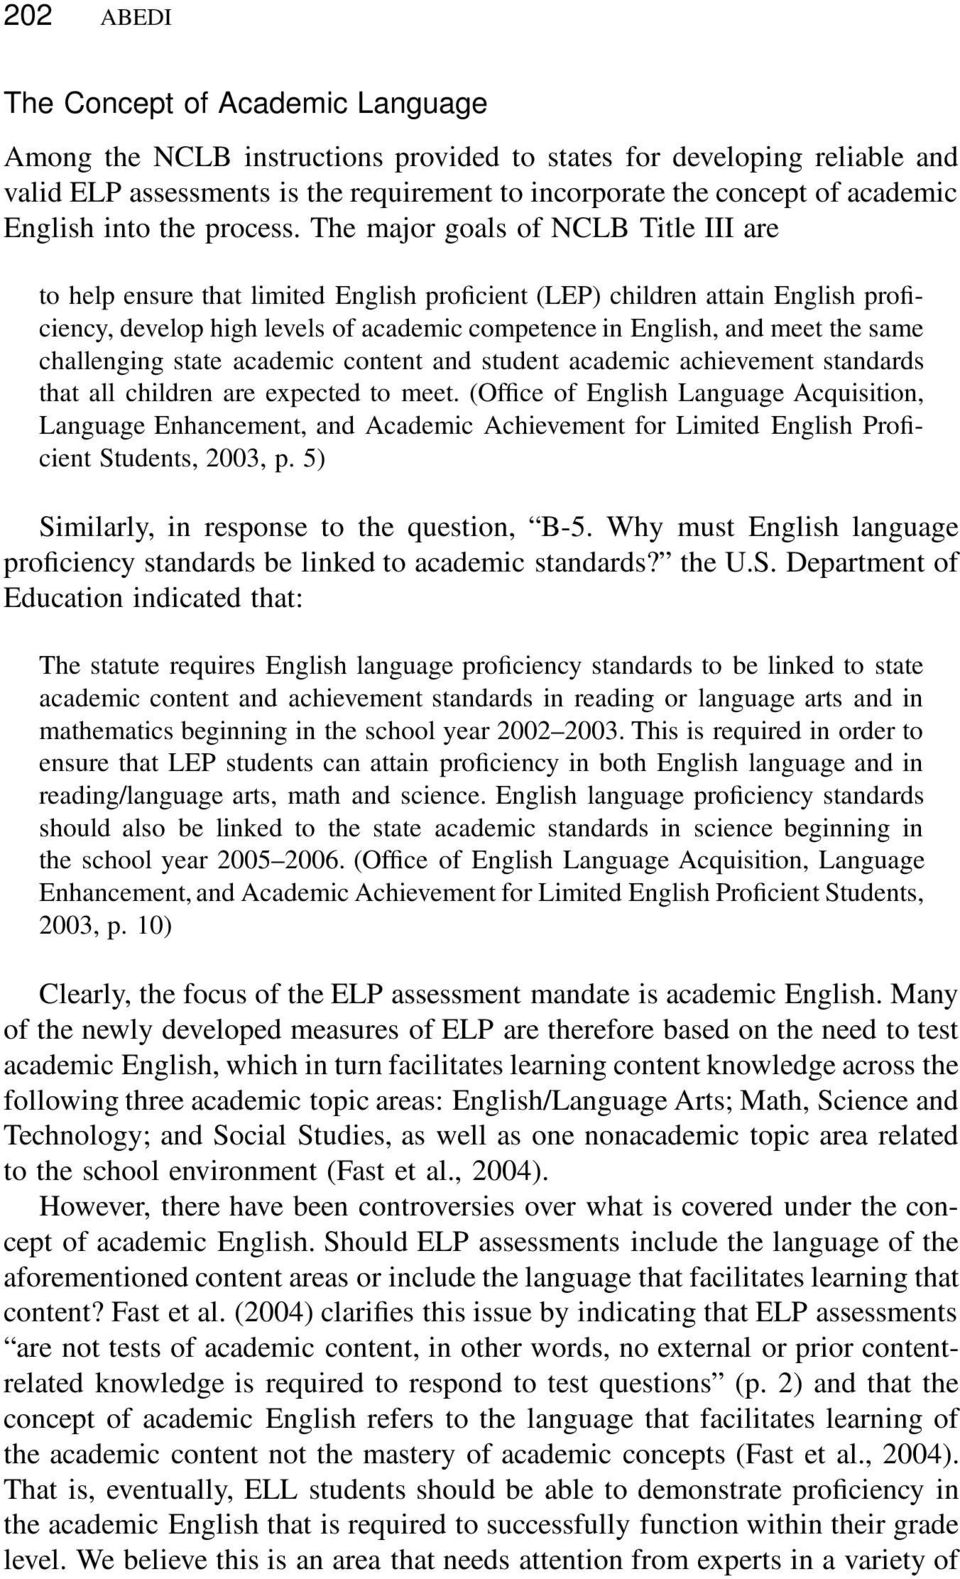 The major goals of NCLB Title III are to help ensure that limited English proficient (LEP) children attain English proficiency, develop high levels of academic competence in English, and meet the